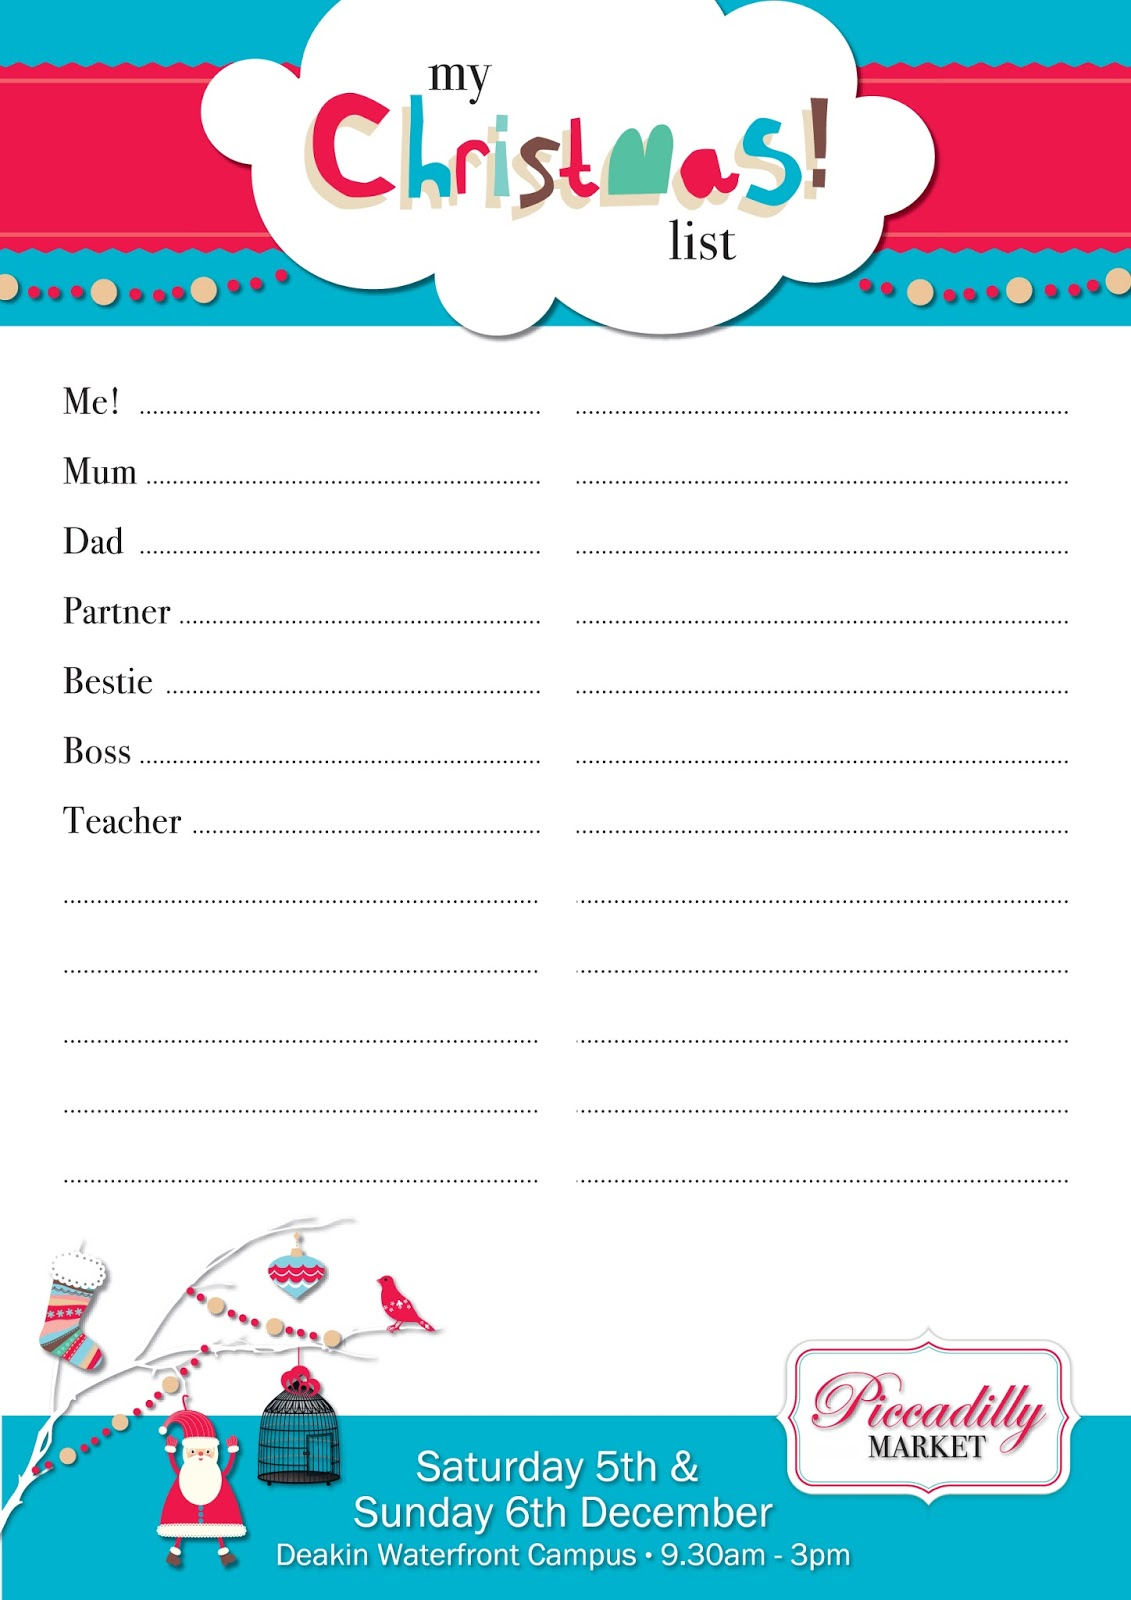 Doc736952 Christmas Wish List Printable 17 Best ideas about – Christmas Wish List Printable